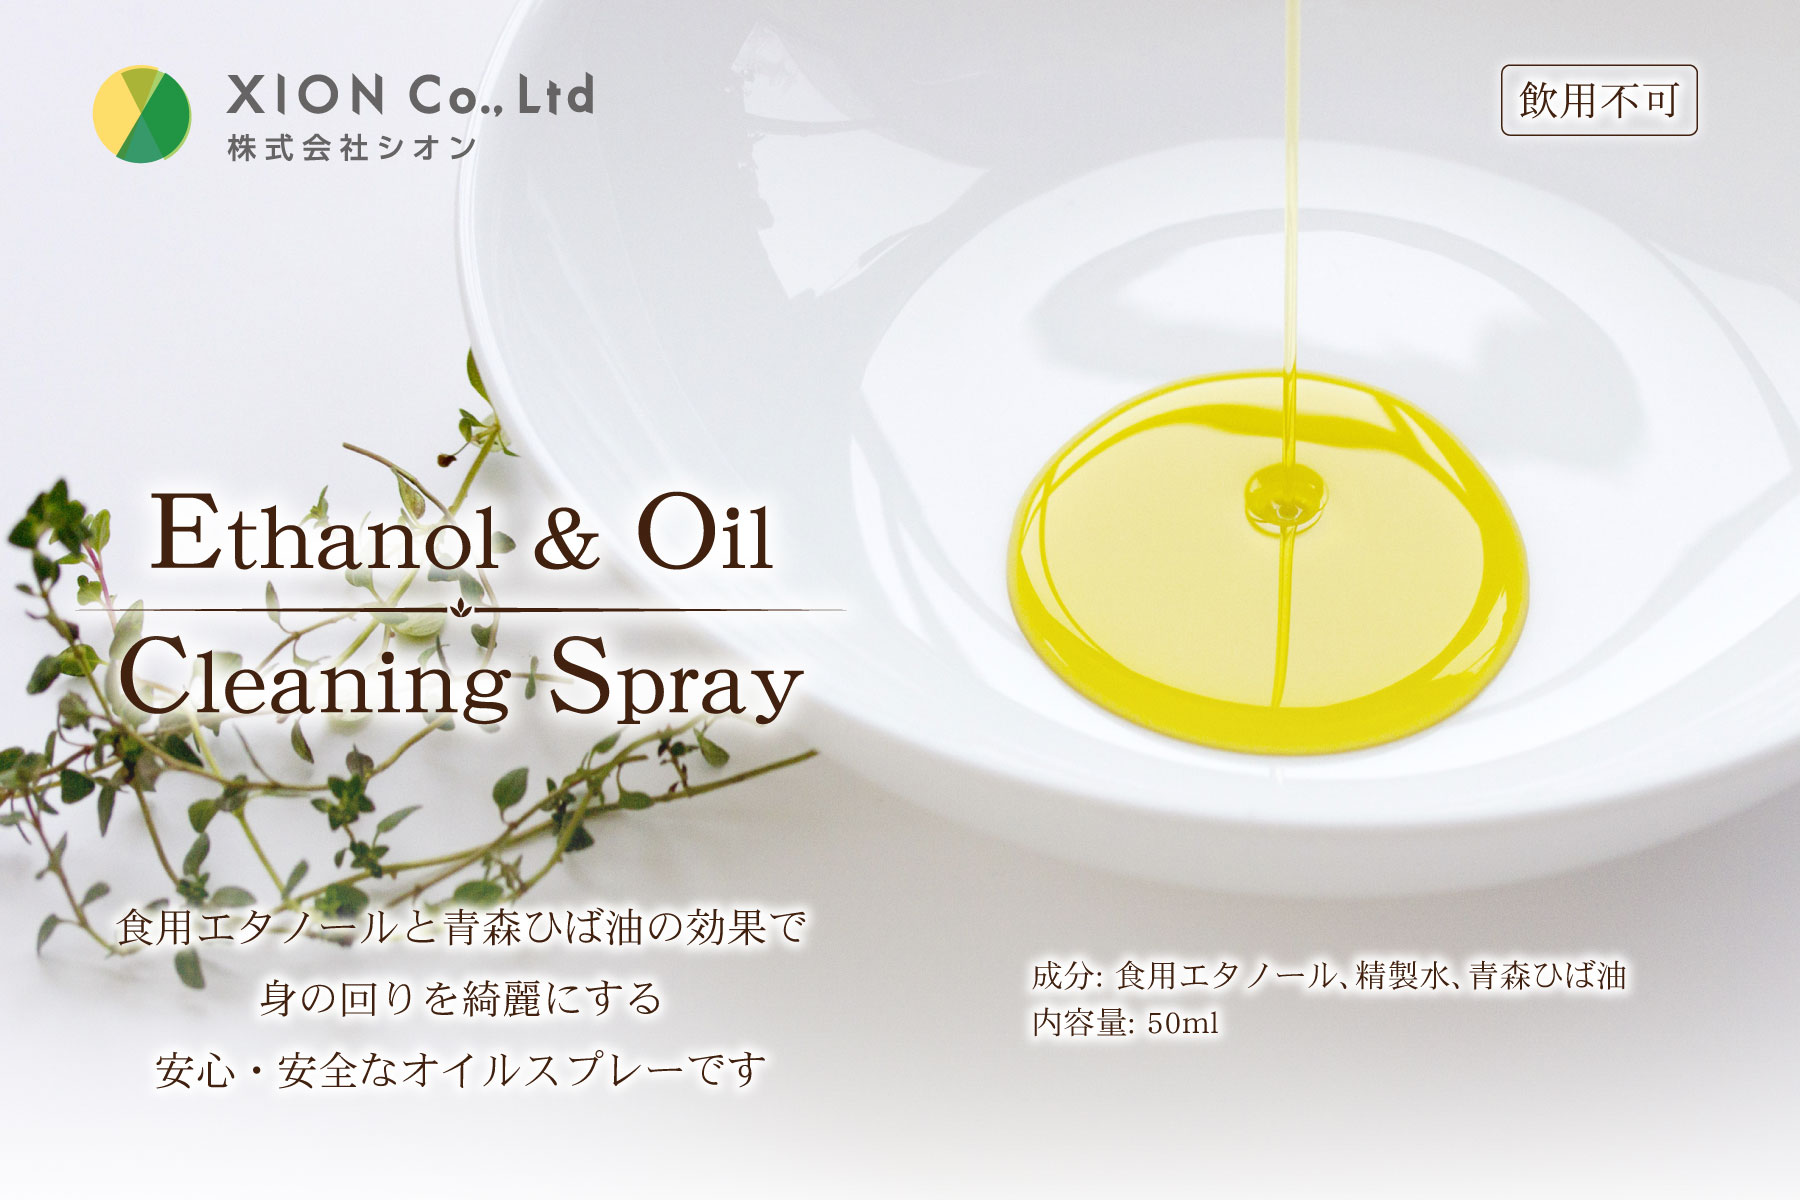 Ethanol & Oil Cleaning Spray 2